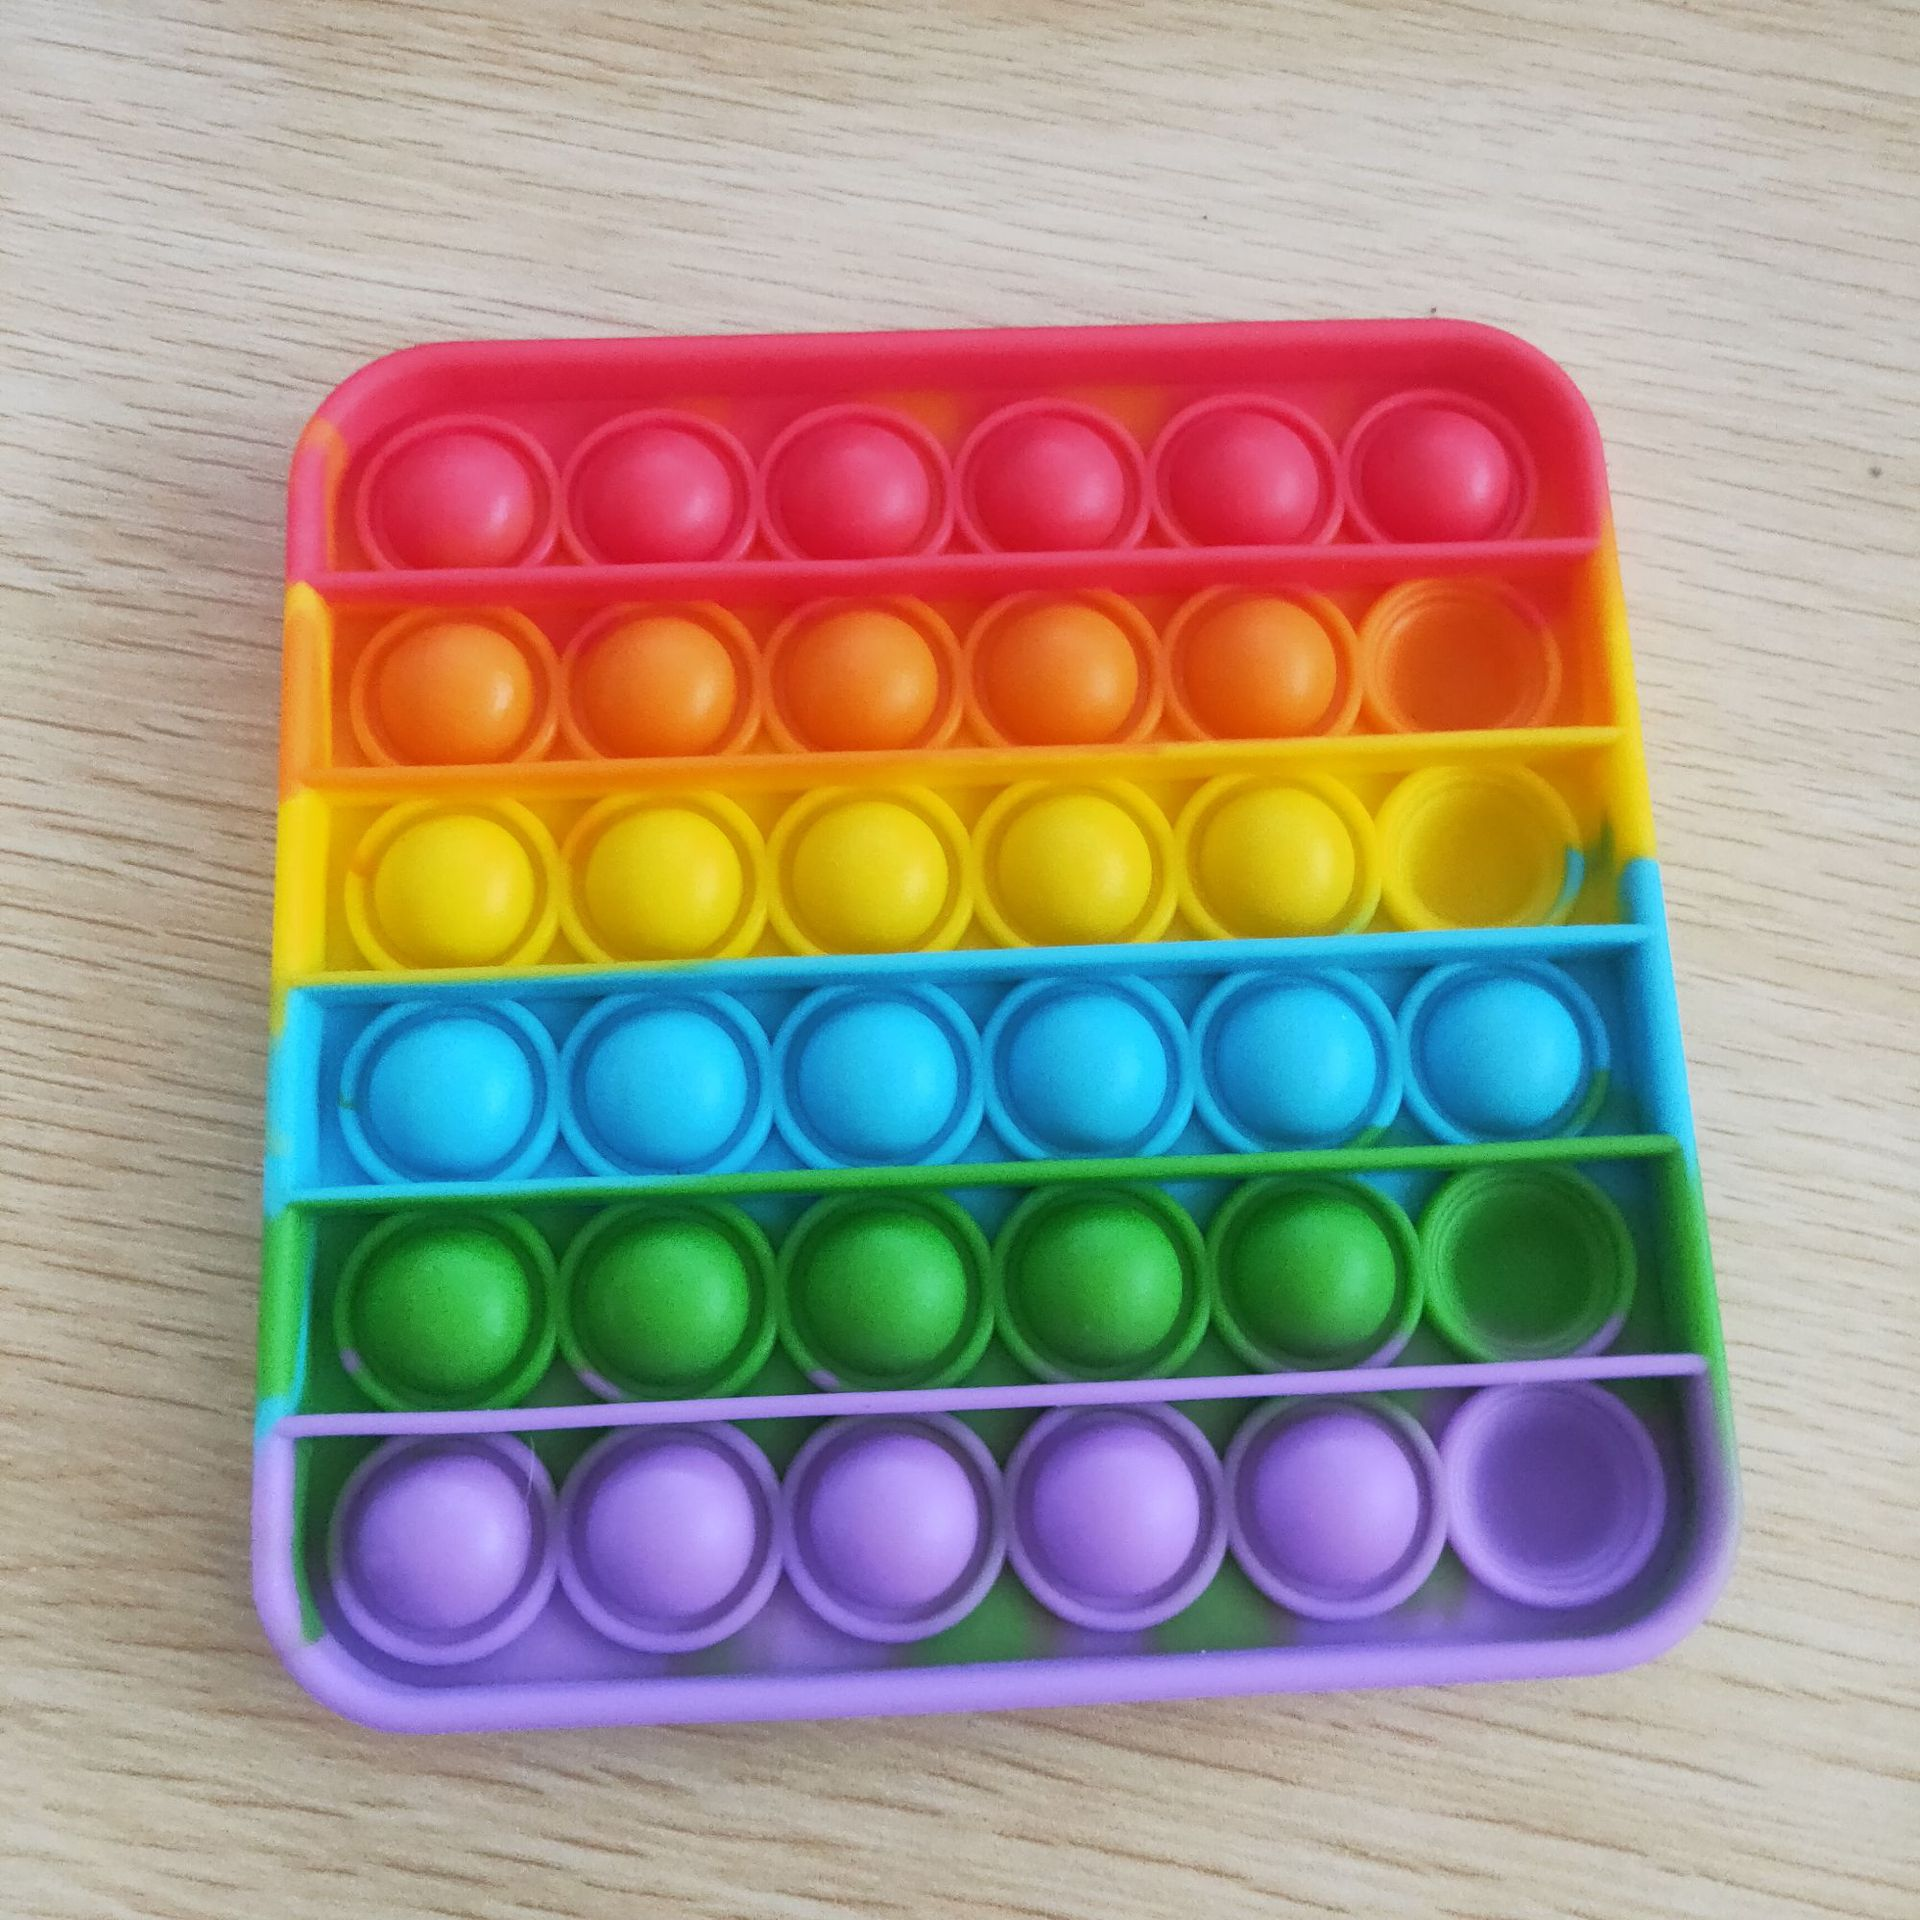 Sensory Toy Playing-Board Bubble Fidget Square Stress-Reliever Rainbow-Color Round Push-Pop img4